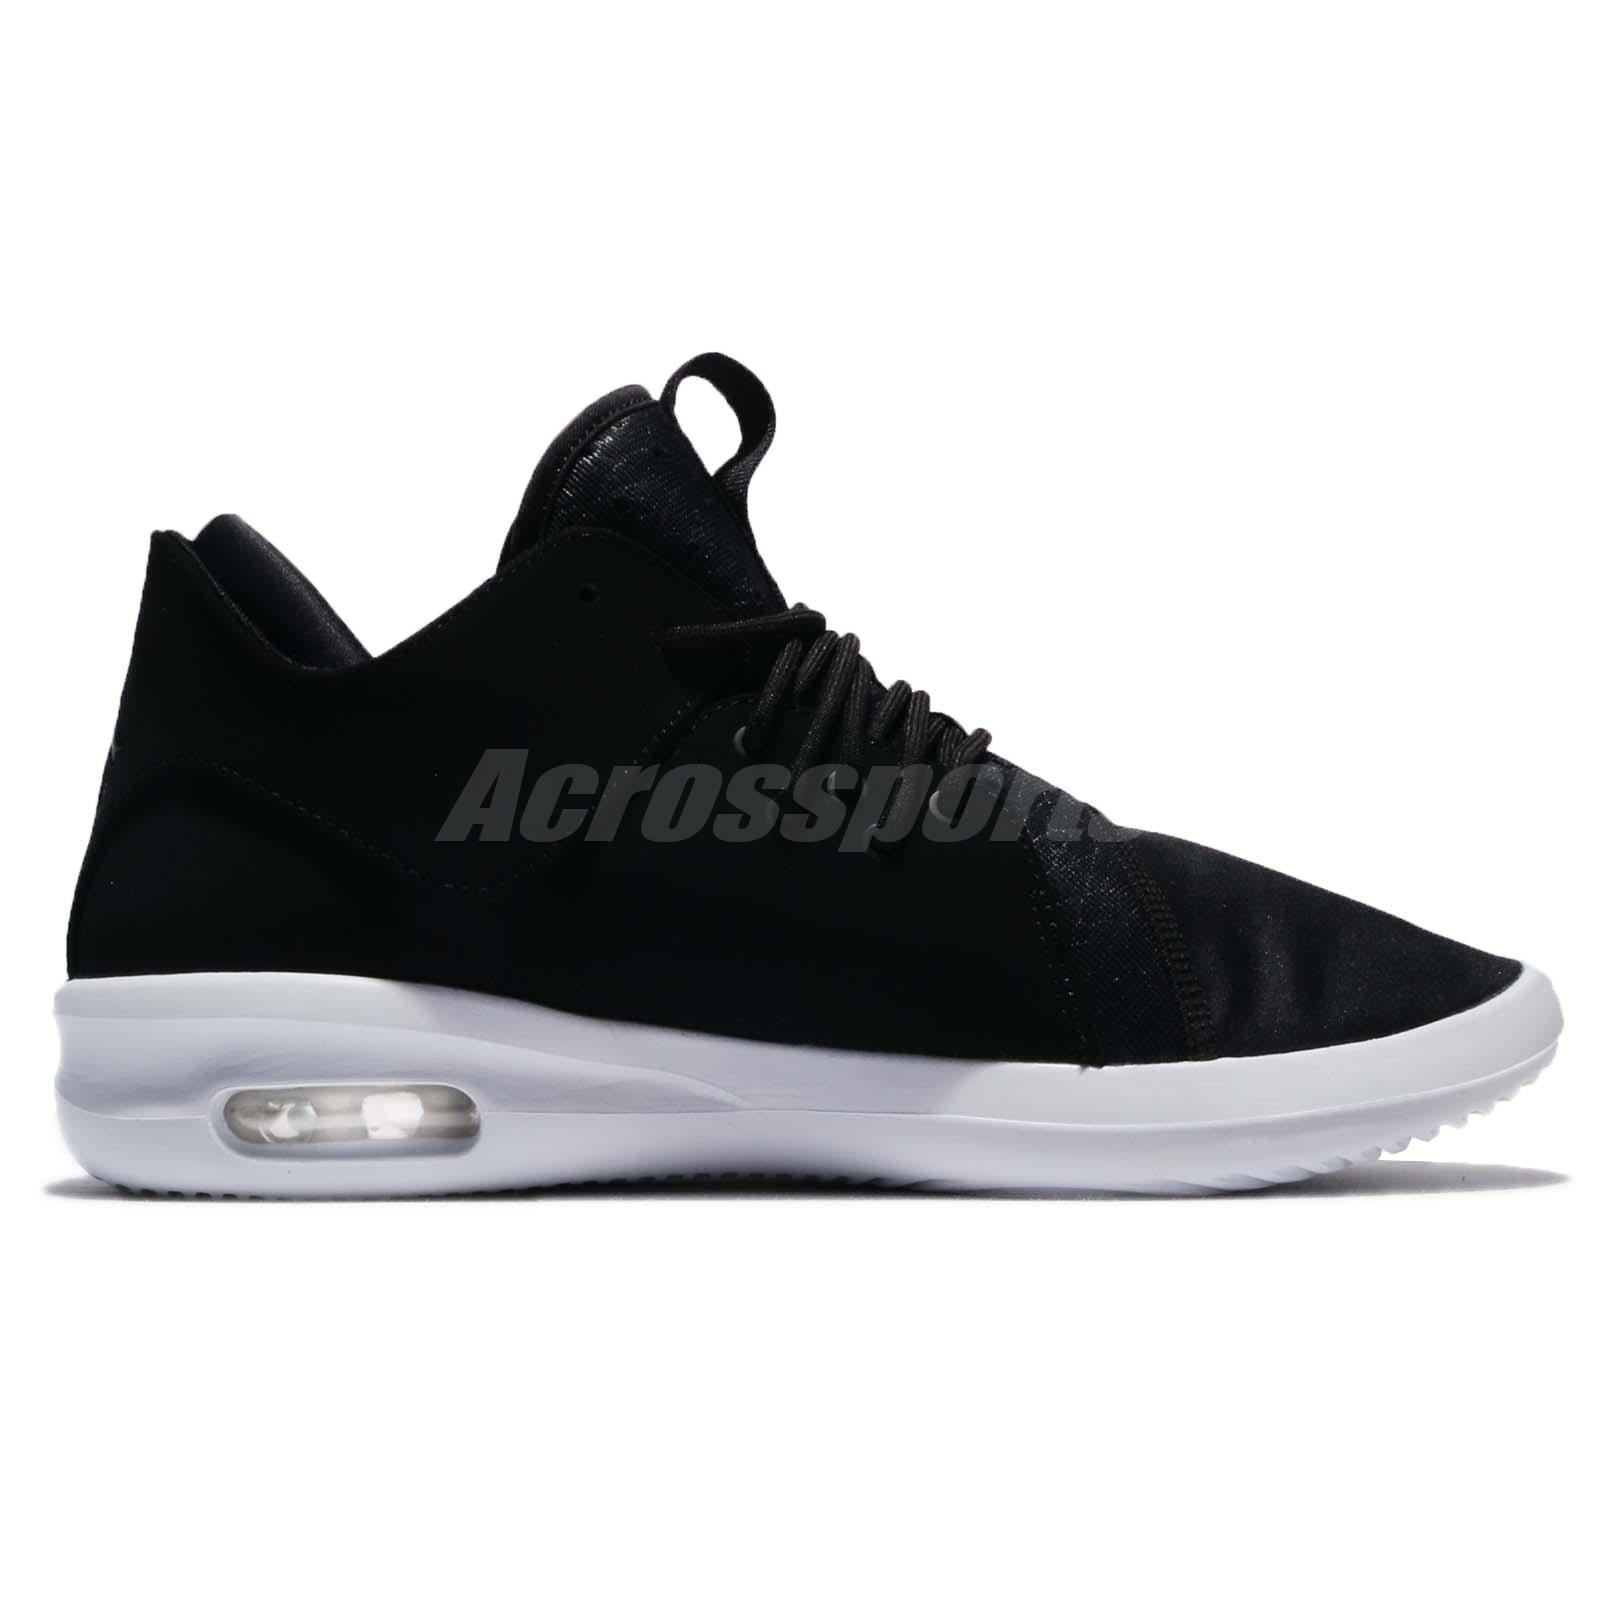 air jordan air first class men's shoe nz